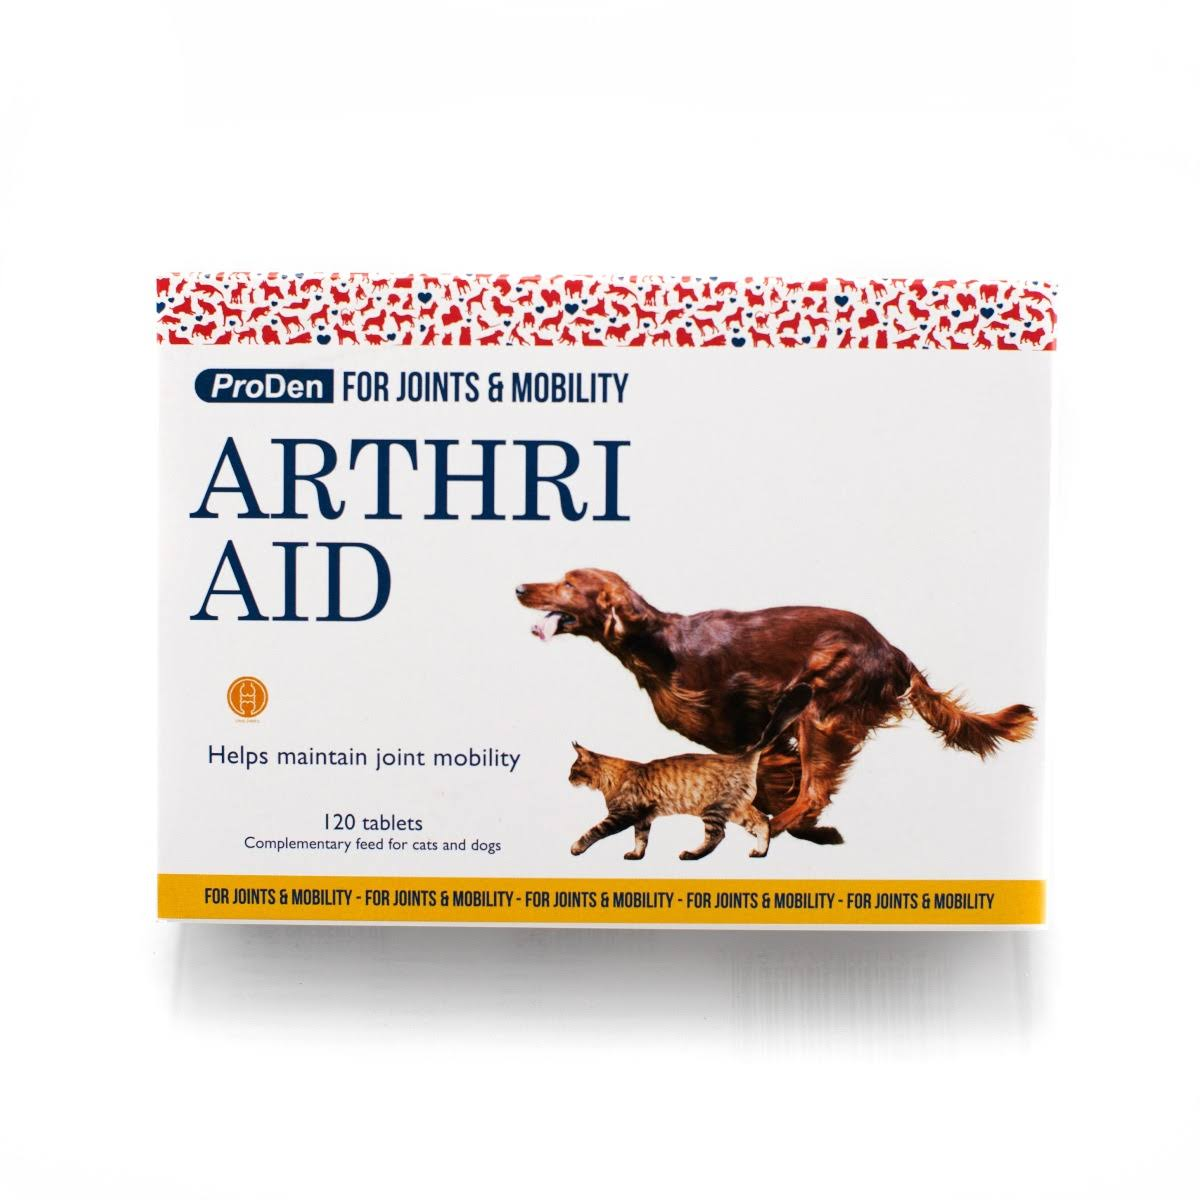 Arthri Aid For Dogs & Cats Joint Mobility - 120 Tablets